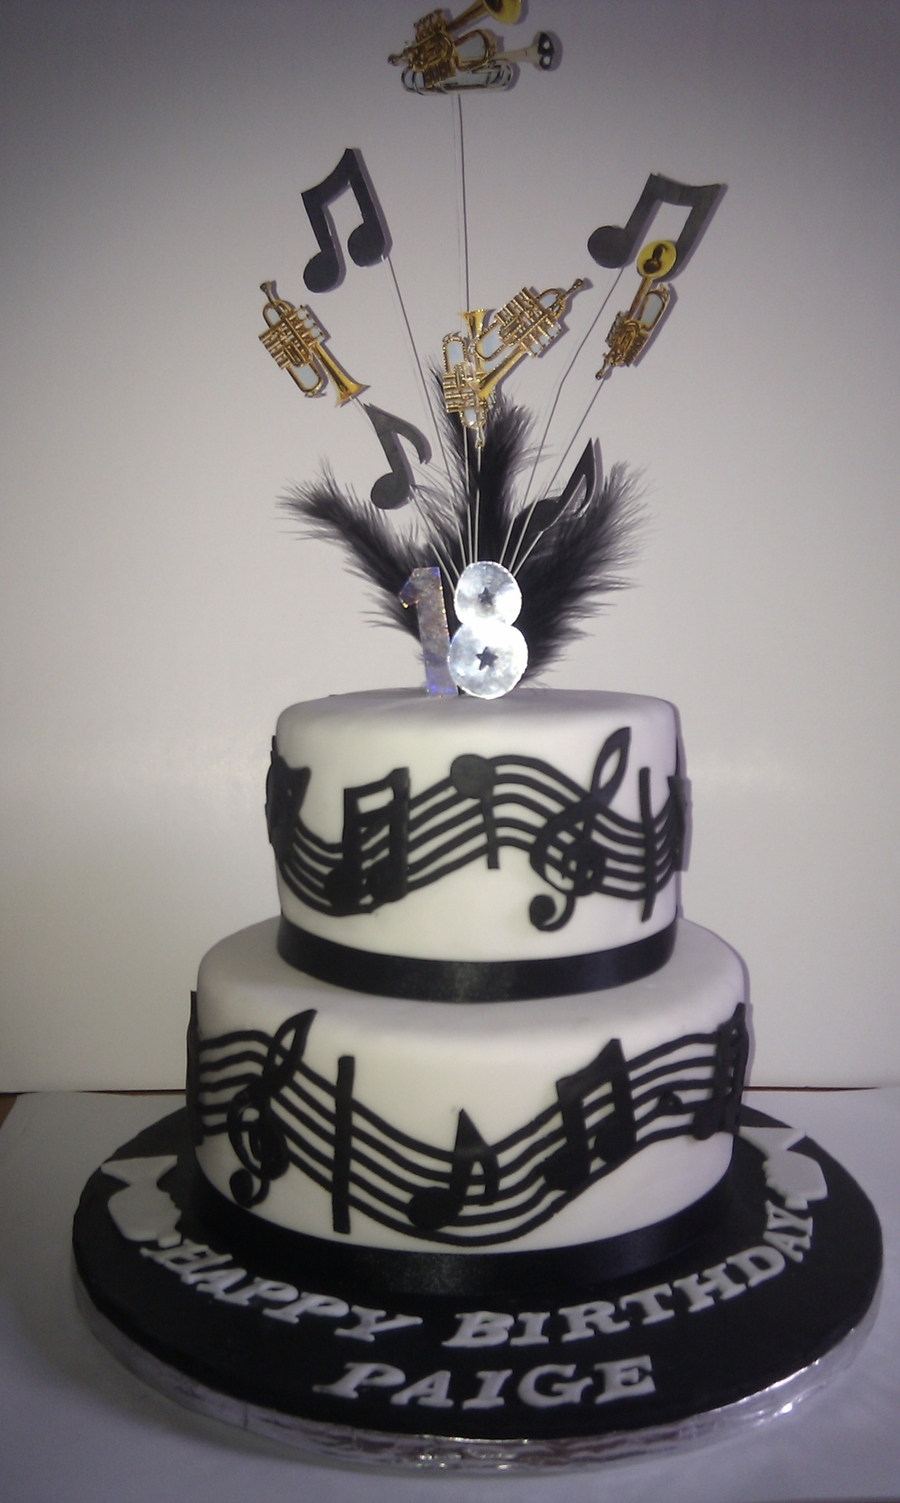 Cake Design Musical Notes : Music/trumpet Theme Cake - CakeCentral.com